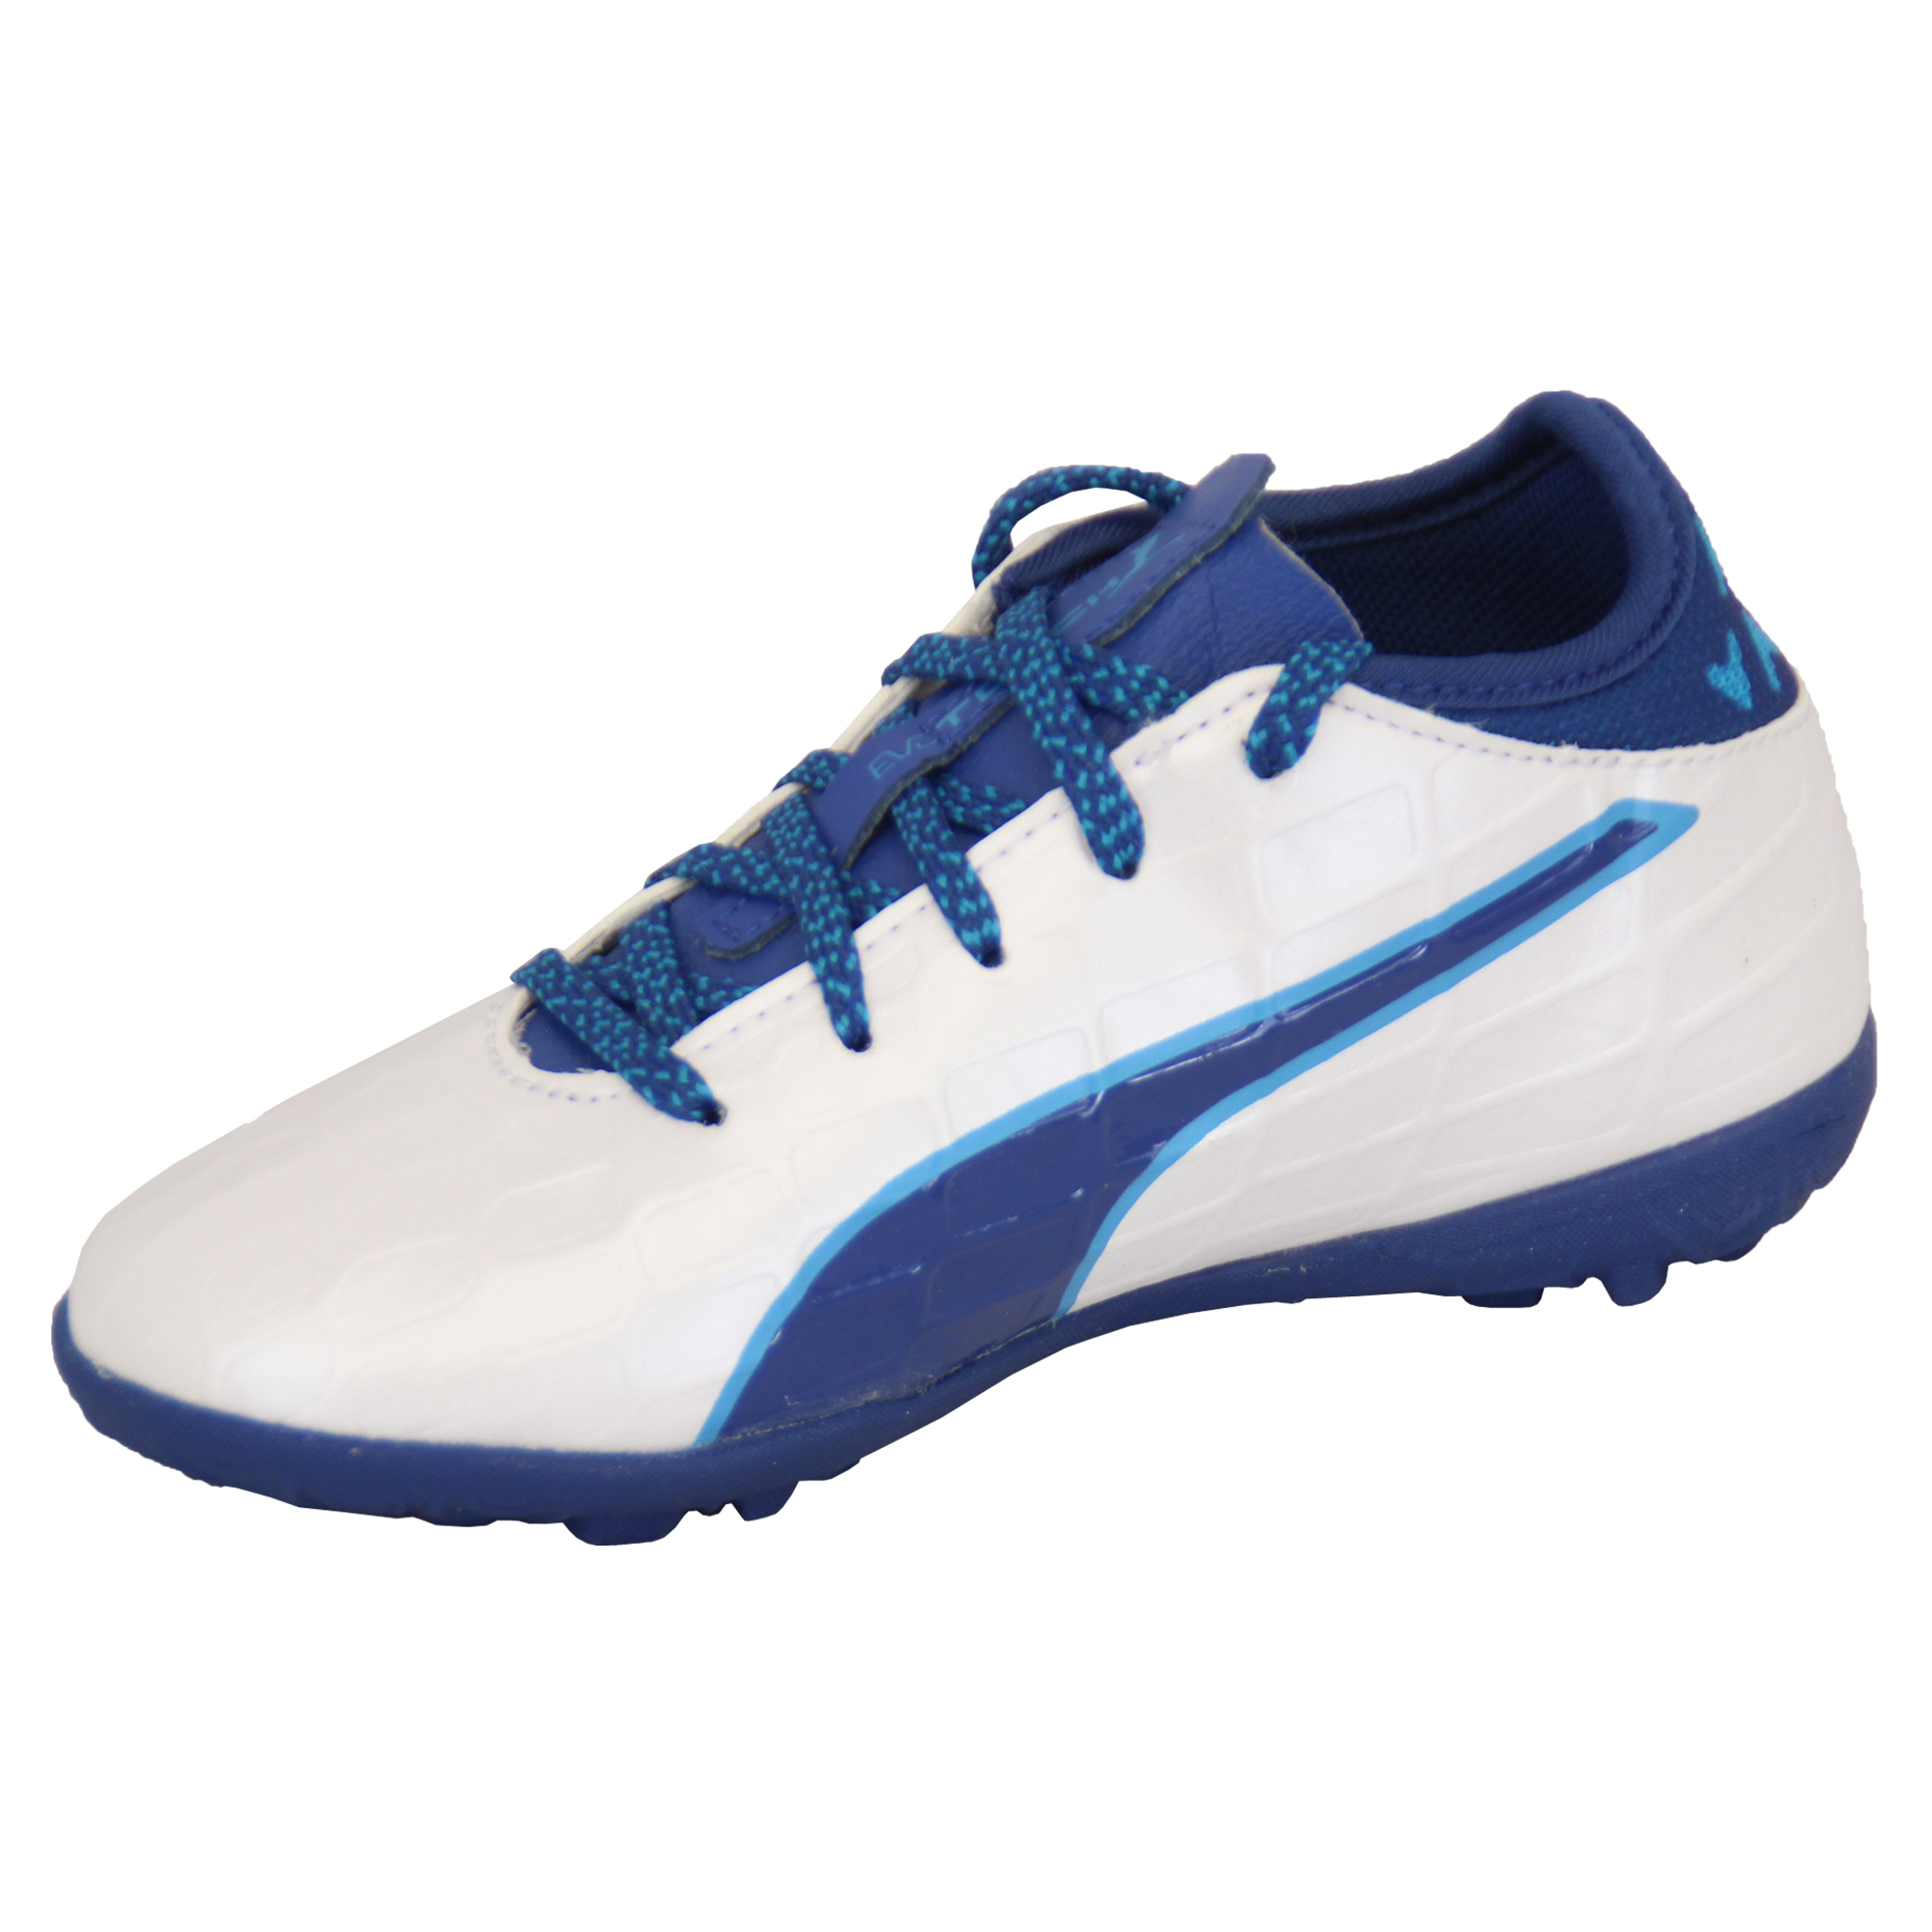 Détails sur Boys Football Trainers PUMA Kids Astro Turf Evo Touch Power Boots Sports Shoes